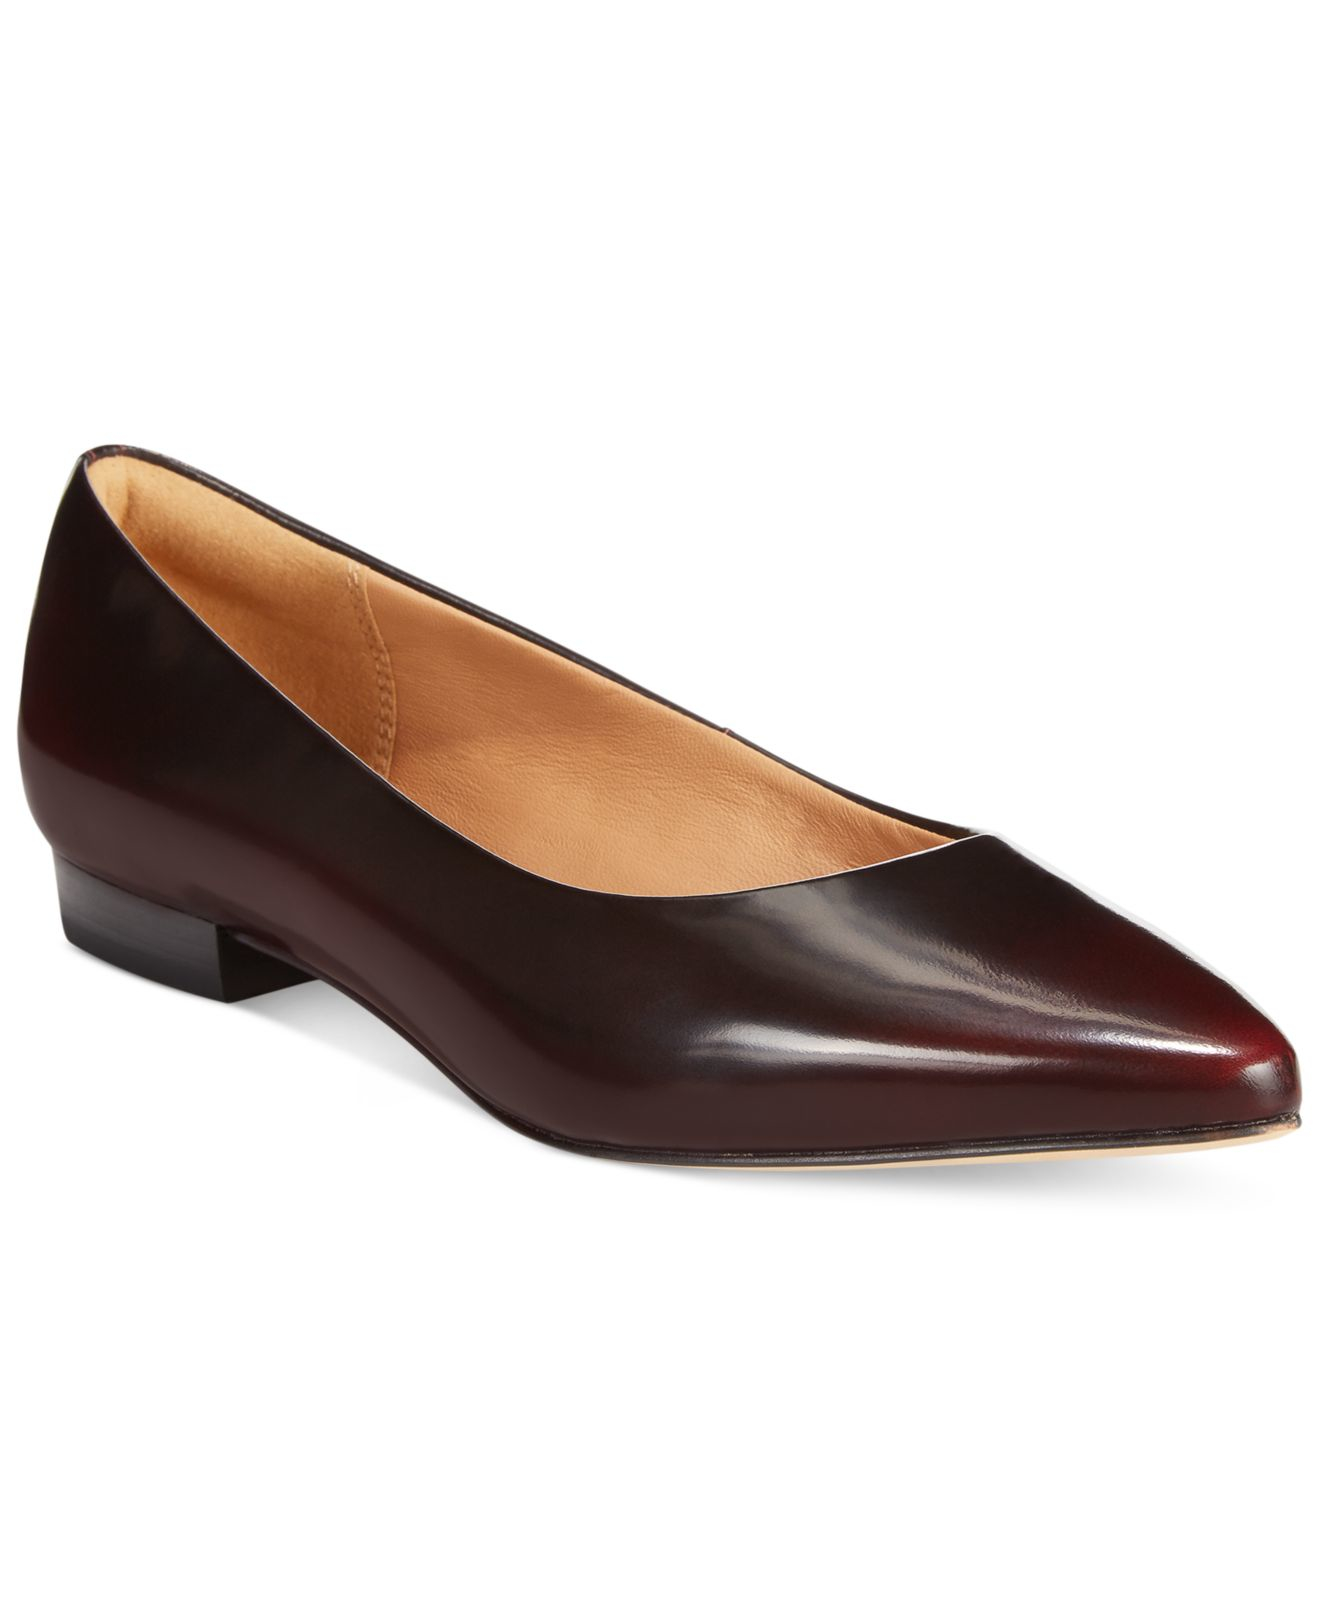 Womens Shoes Clarks Corabeth Abby Burgundy Leather